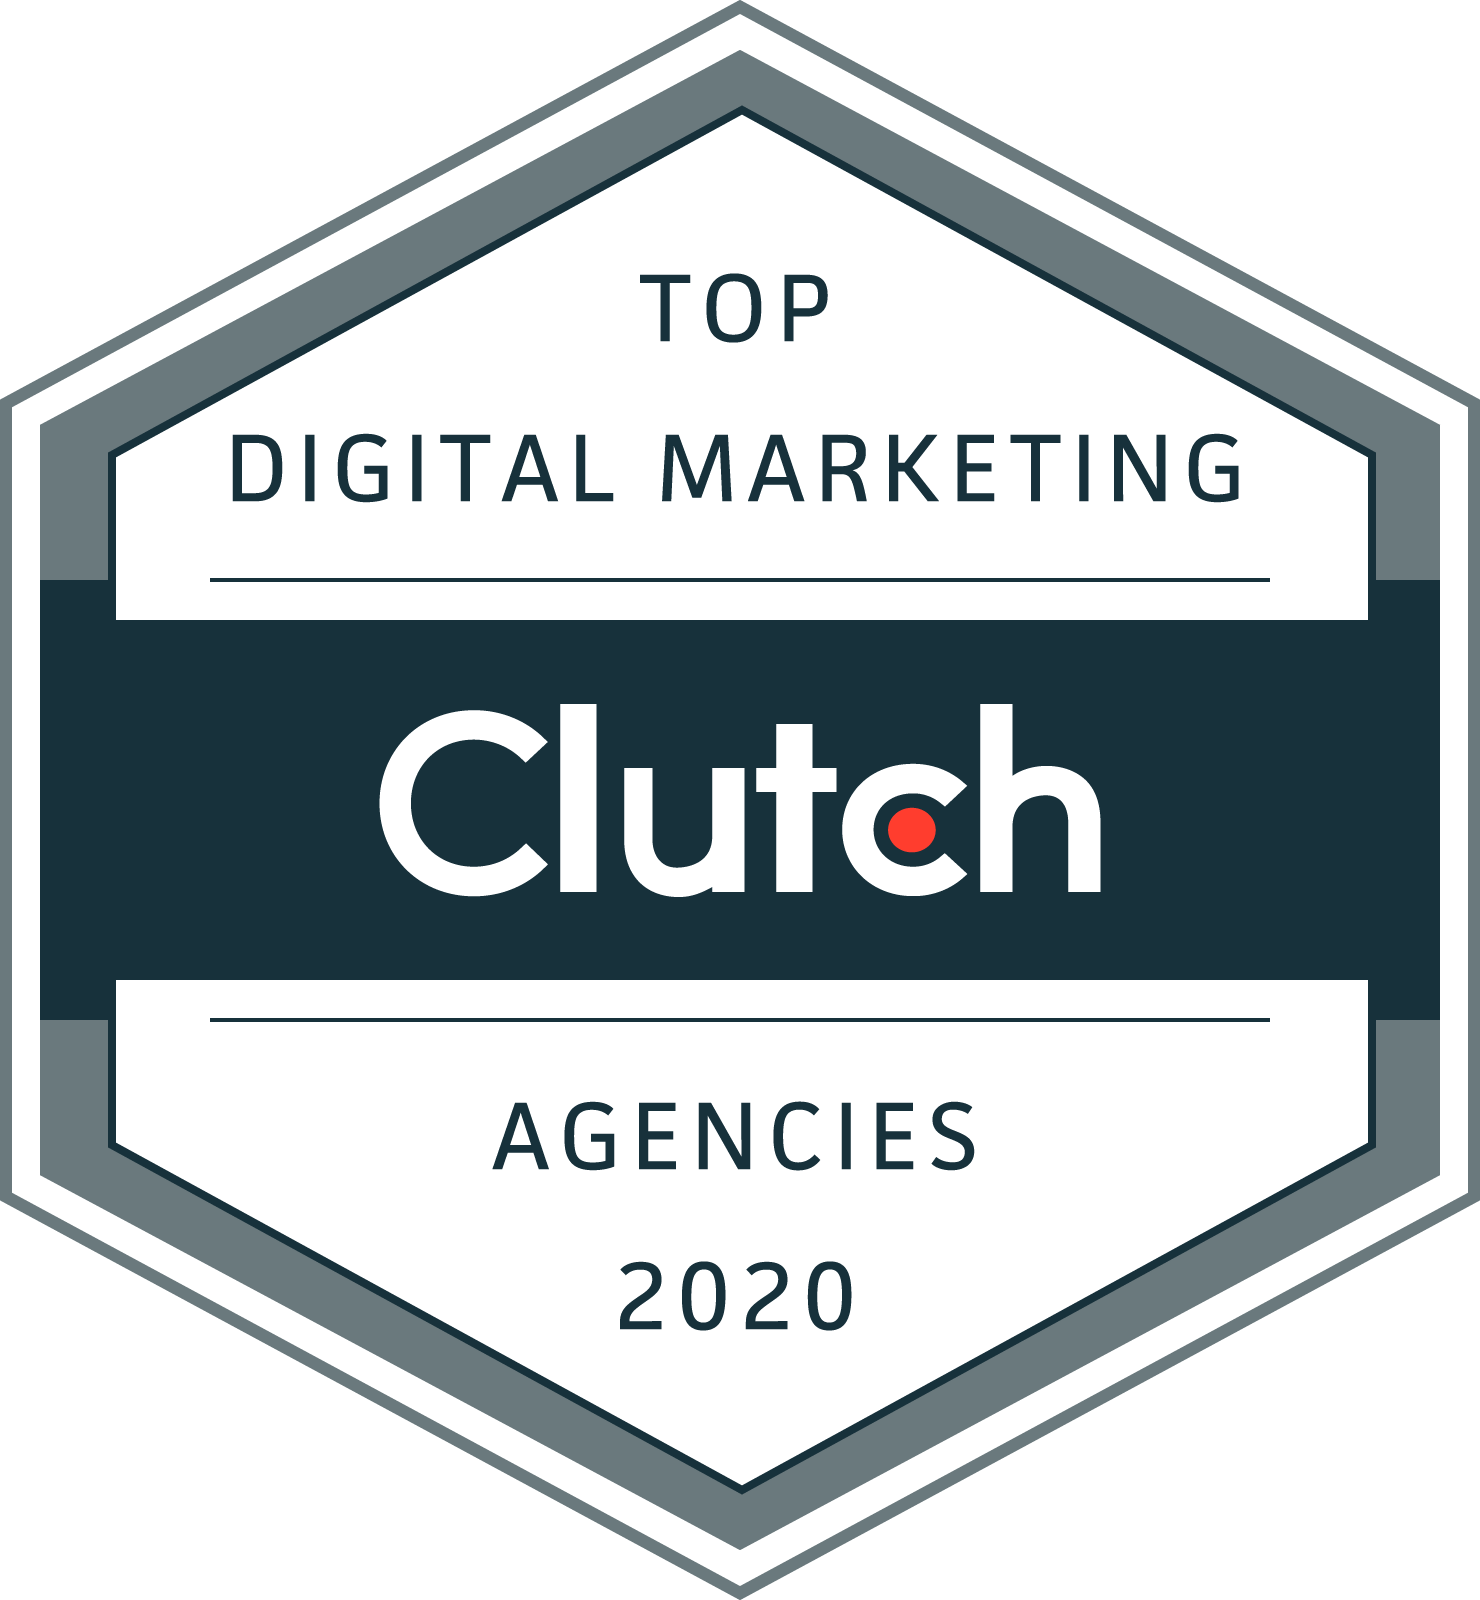 Top Digital Marketing Agencies 2020